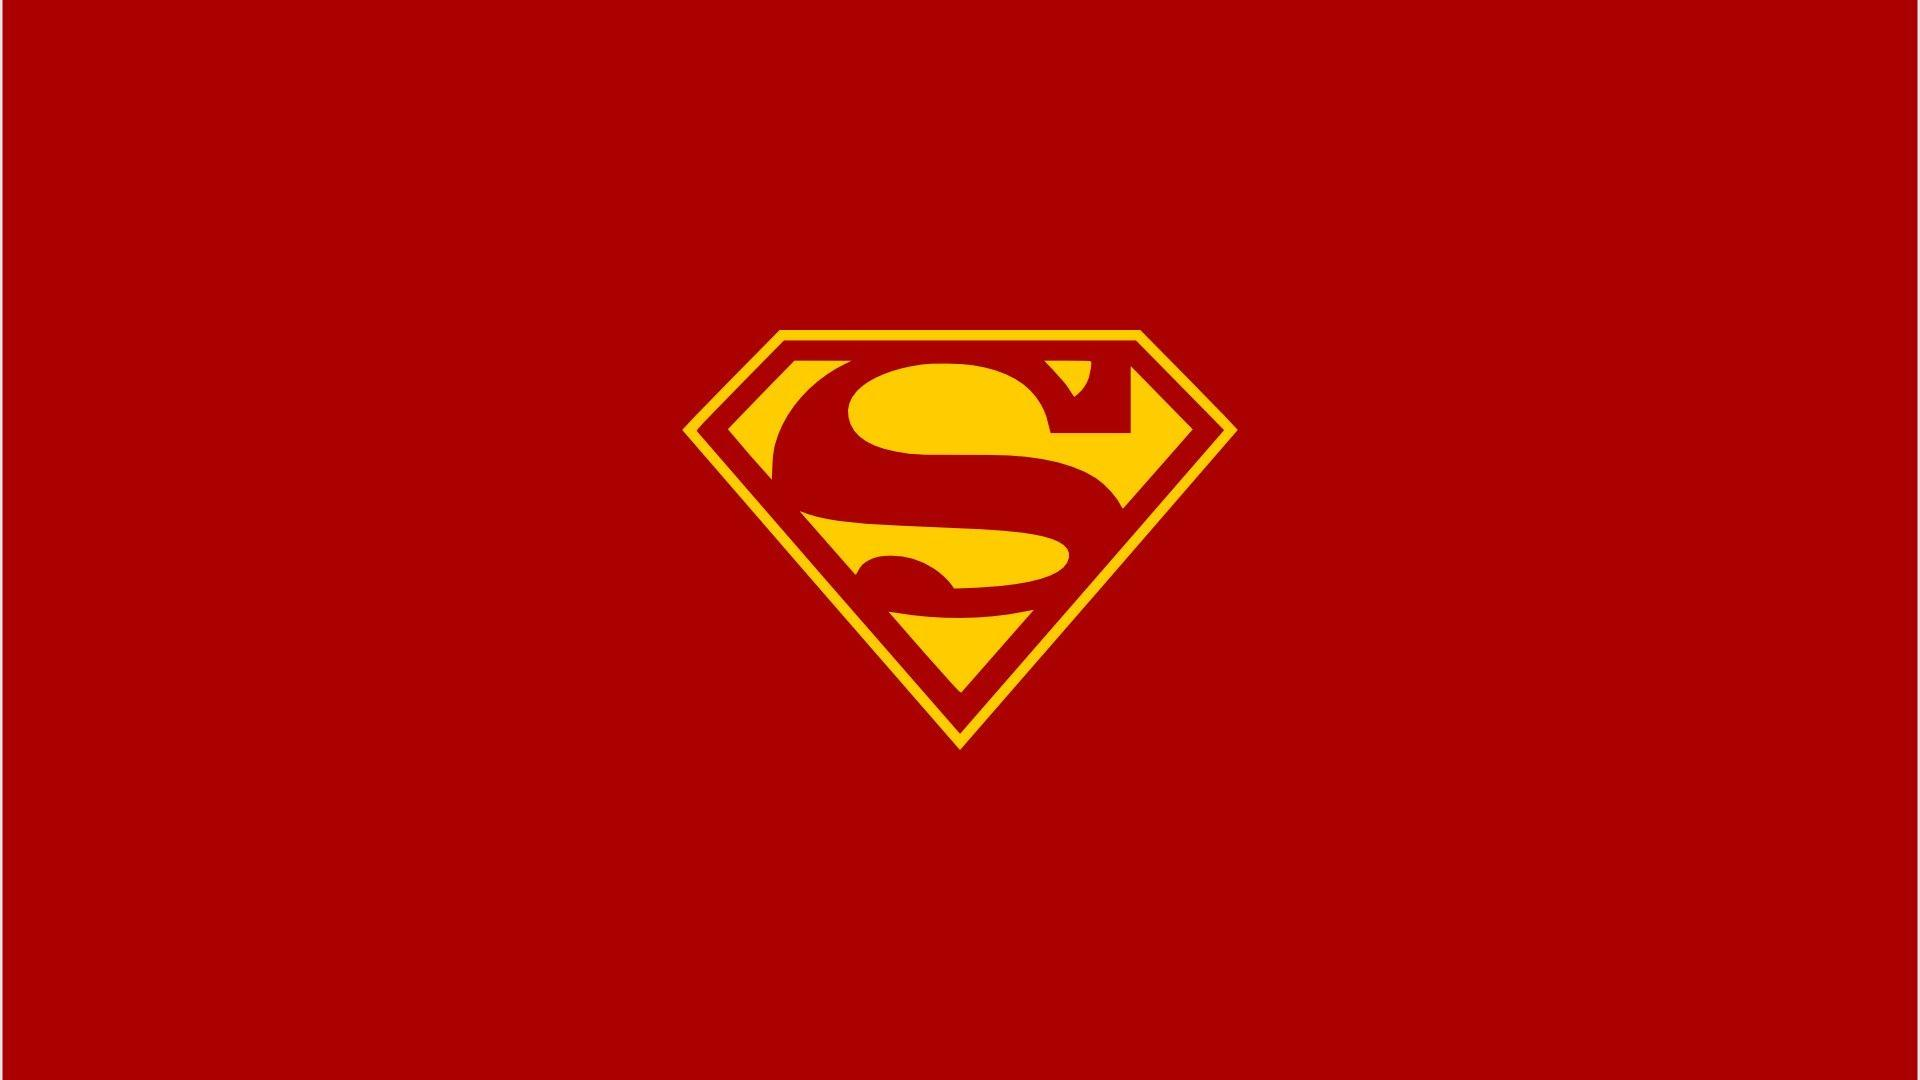 superheroes logos wallpapers wallpaper cave